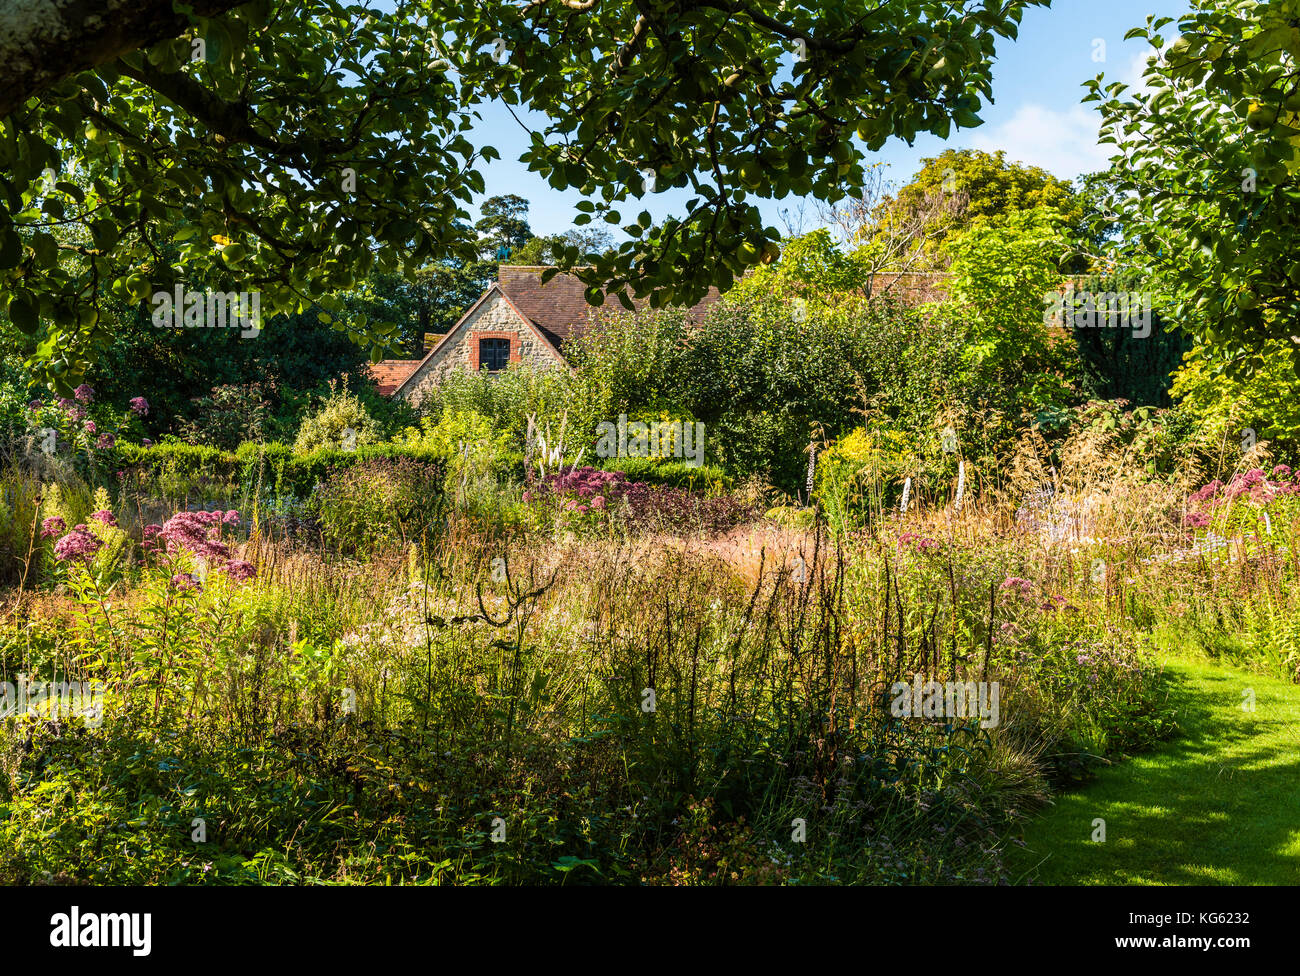 Wildflower meadow garden, Le Manoir, Oxfordshire, UK - Stock Image